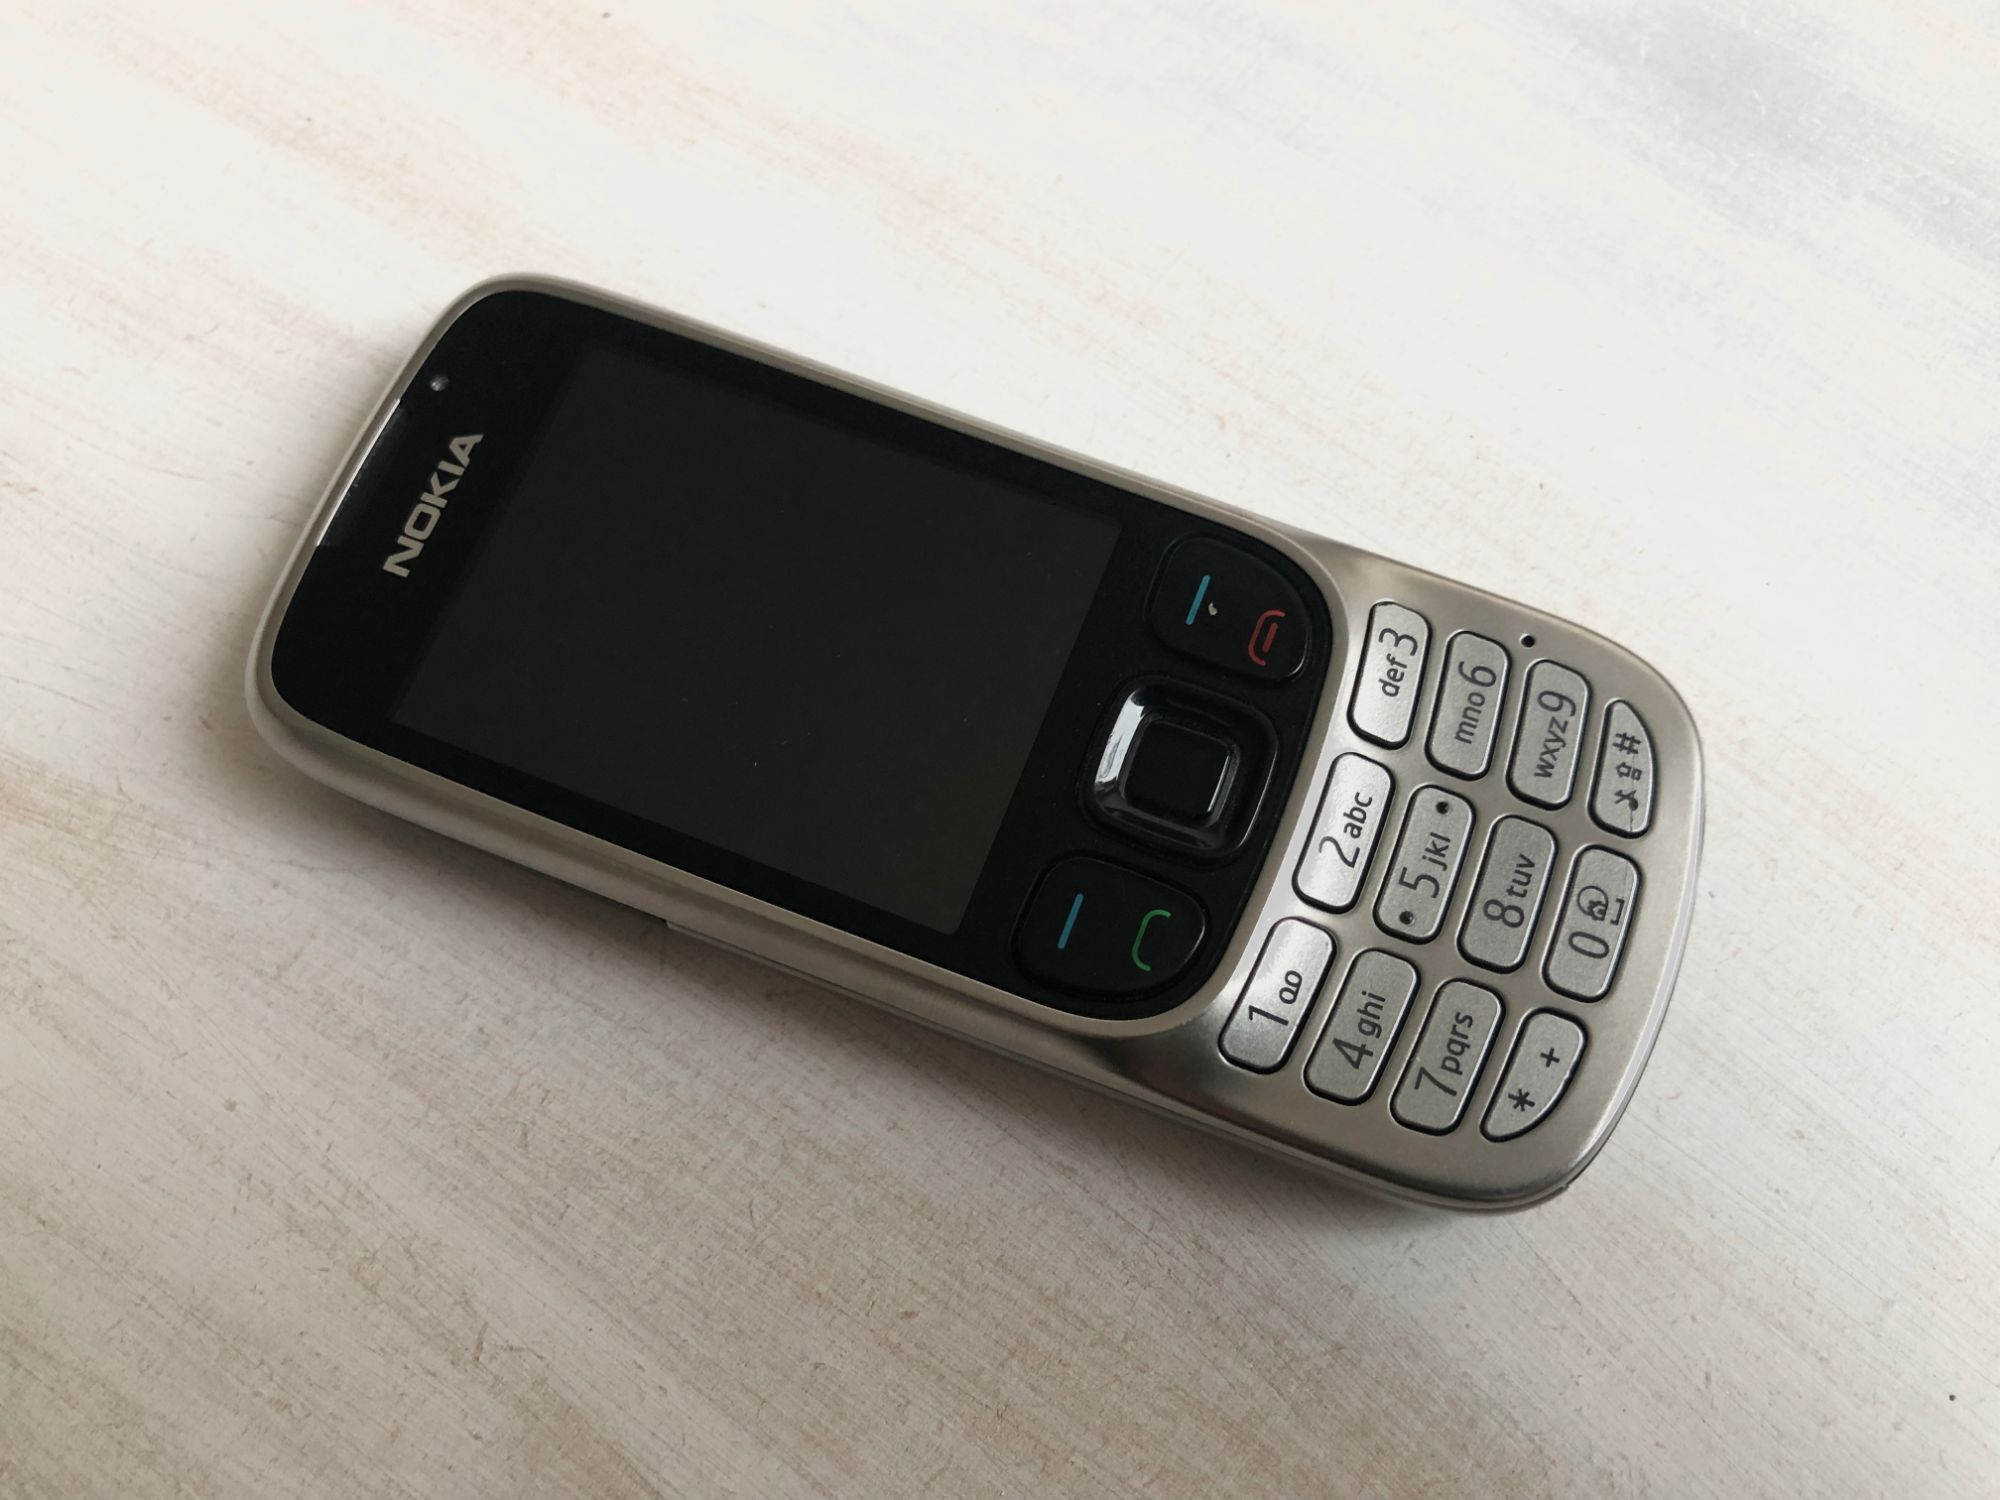 Free stock images money bloggers blog photos old nokia mobile phone